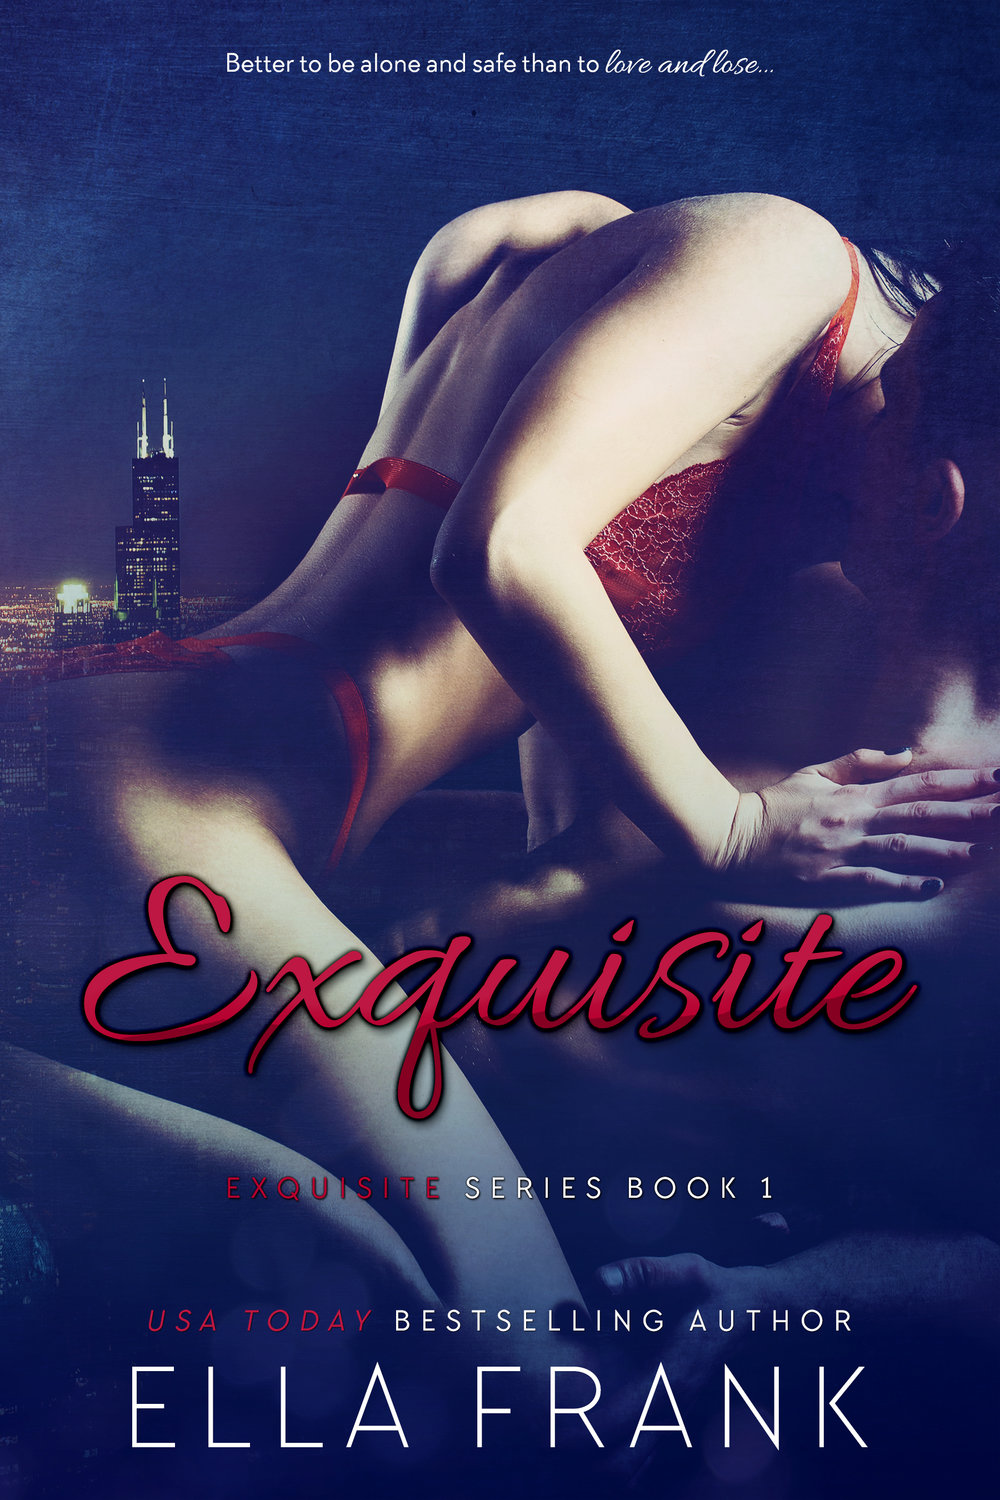 Exquisite     Her heart was guarded…    Tormented by self-imposed guilt, Dr. Lena O'Donnell has spent the last nine years in survival mode. Struggling through days that seem to blend together and battling her way through each horrifying night, she's determined that this is what she deserves…    Until he tore down the walls…    Mason Langley's life is going exactly the way he planned it, until her. A confirmed bachelor and the successful owner of the hottest restaurant to hit Chicago, he never expects to be blindsided by an angry woman in a pair of scrubs. No matter how hard he tries, he can't seem to shake the doctor, and he finds himself liking the way she makes him feel.    Almost overnight Lena finds her world turned upside down by Mason and the sexual desire they discover together. Slowly, she lowers her guard and invites him inside but when tragedy strikes she begins to believe that sometimes it's better to be alone and safe than to love and lose.    Read Exquisite for FREE TODAY!      AMAZON US  ~ Add to  GoodReads